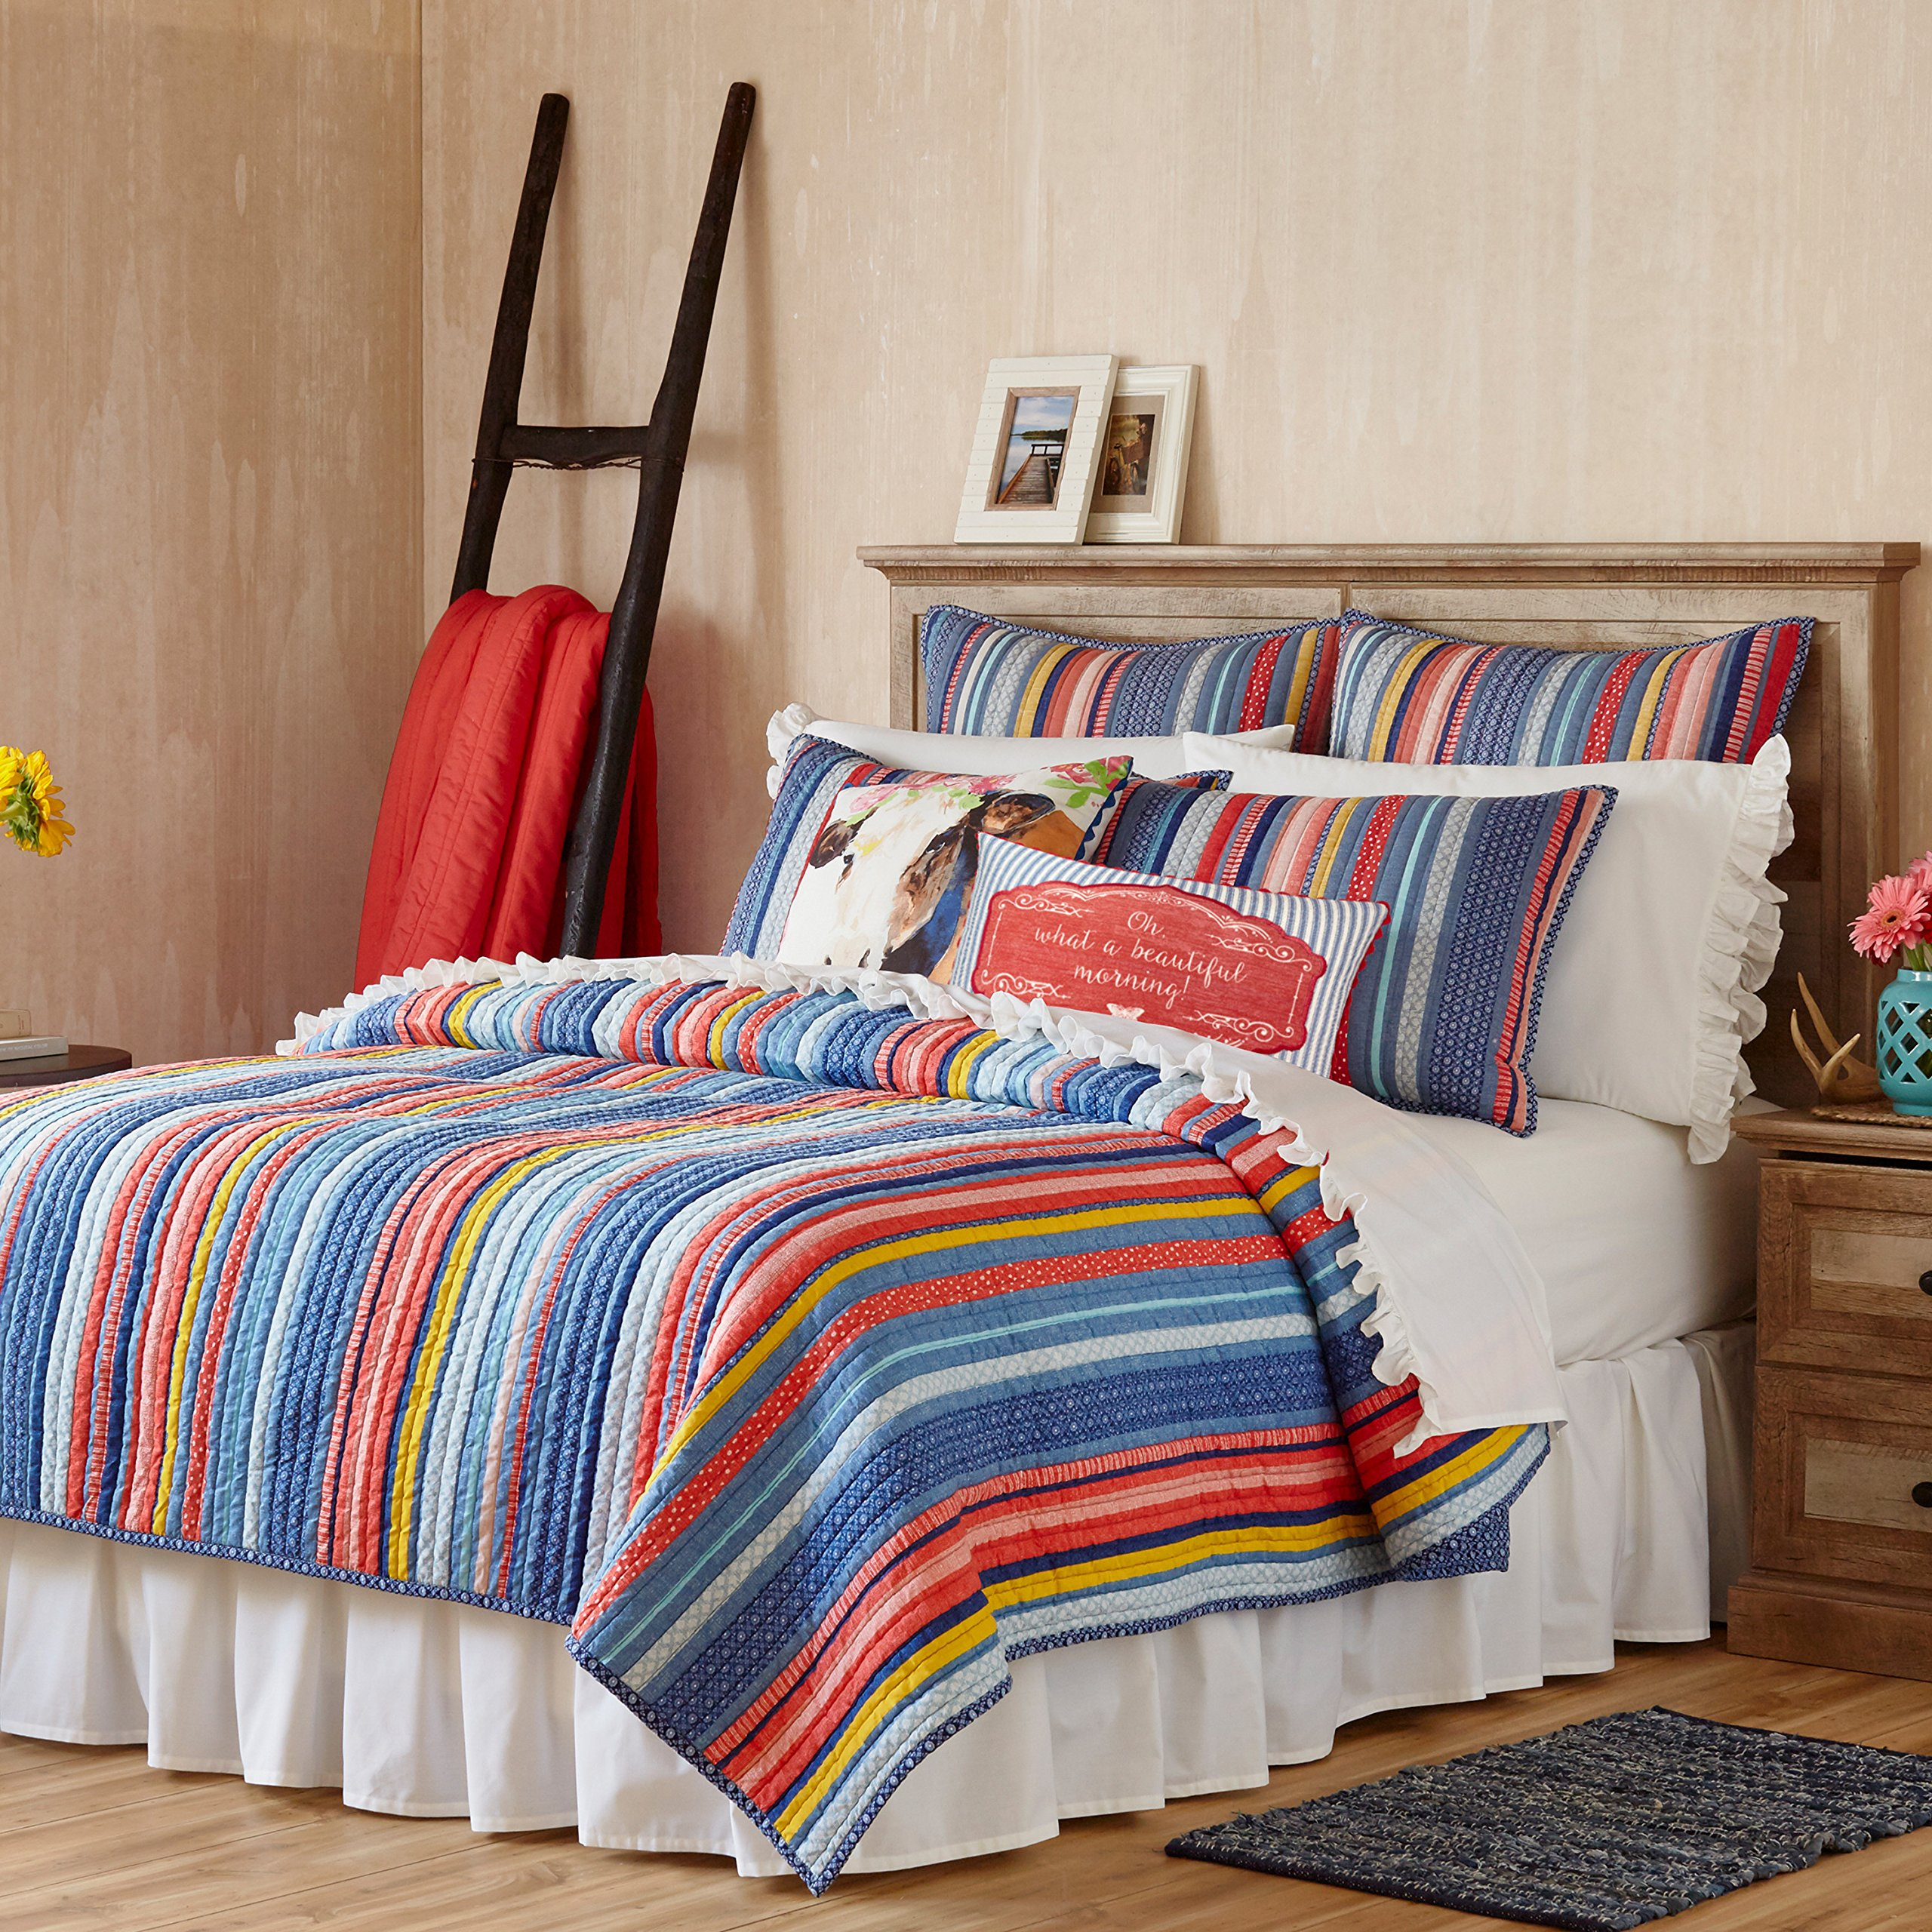 The Pioneer Woman Quilt Bedding Bedspread Barn Dance F/ Q King (Full / Queen 90'' x 90'')